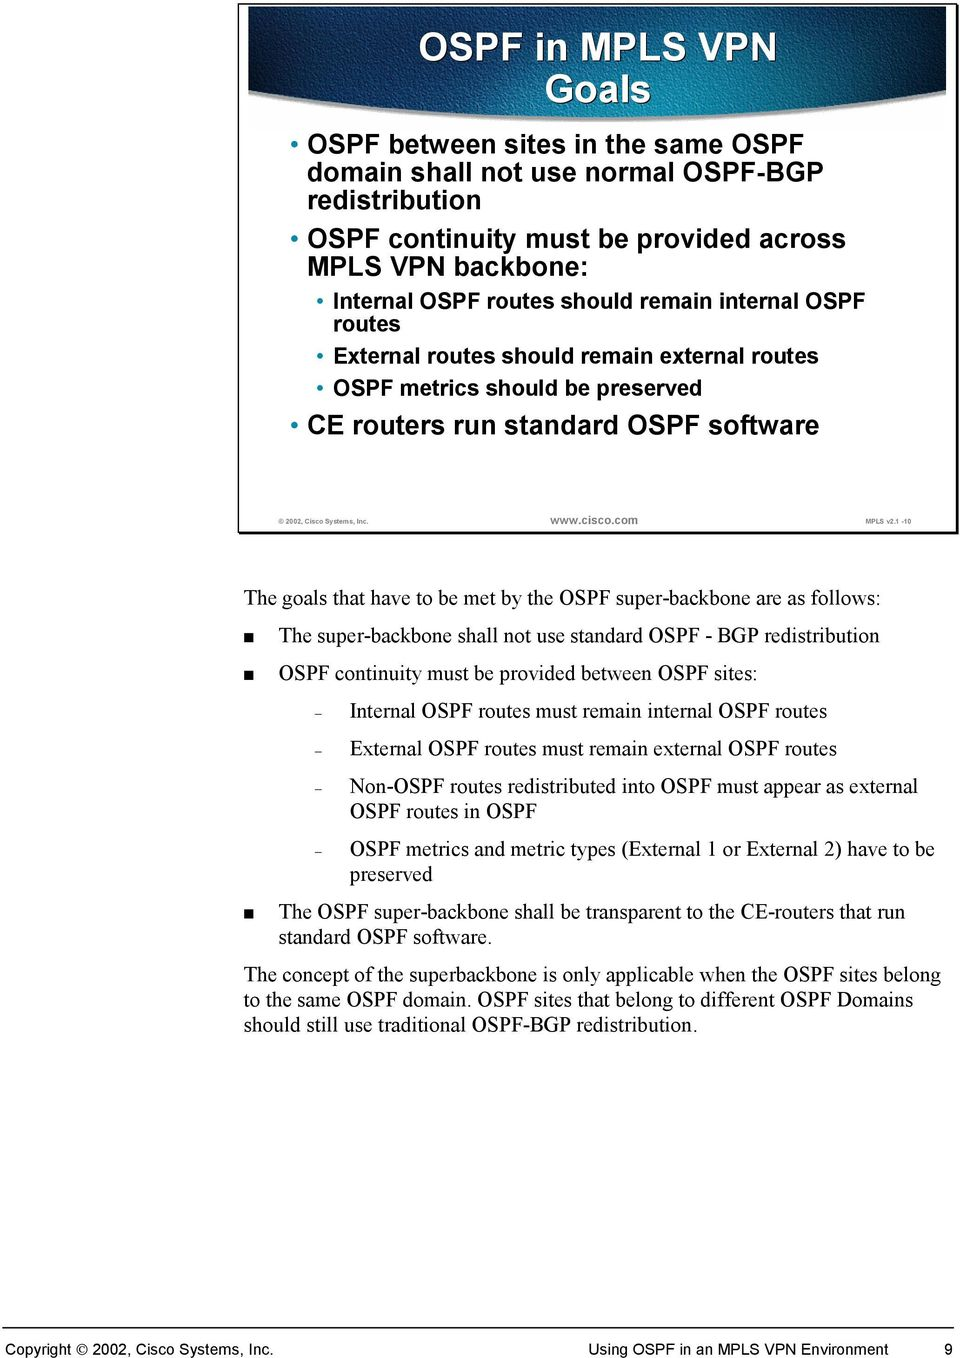 1-10 The goals that have to be met by the OSPF super-backbone are as follows: The super-backbone shall not use standard OSPF - BGP redistribution OSPF continuity must be provided between OSPF sites: